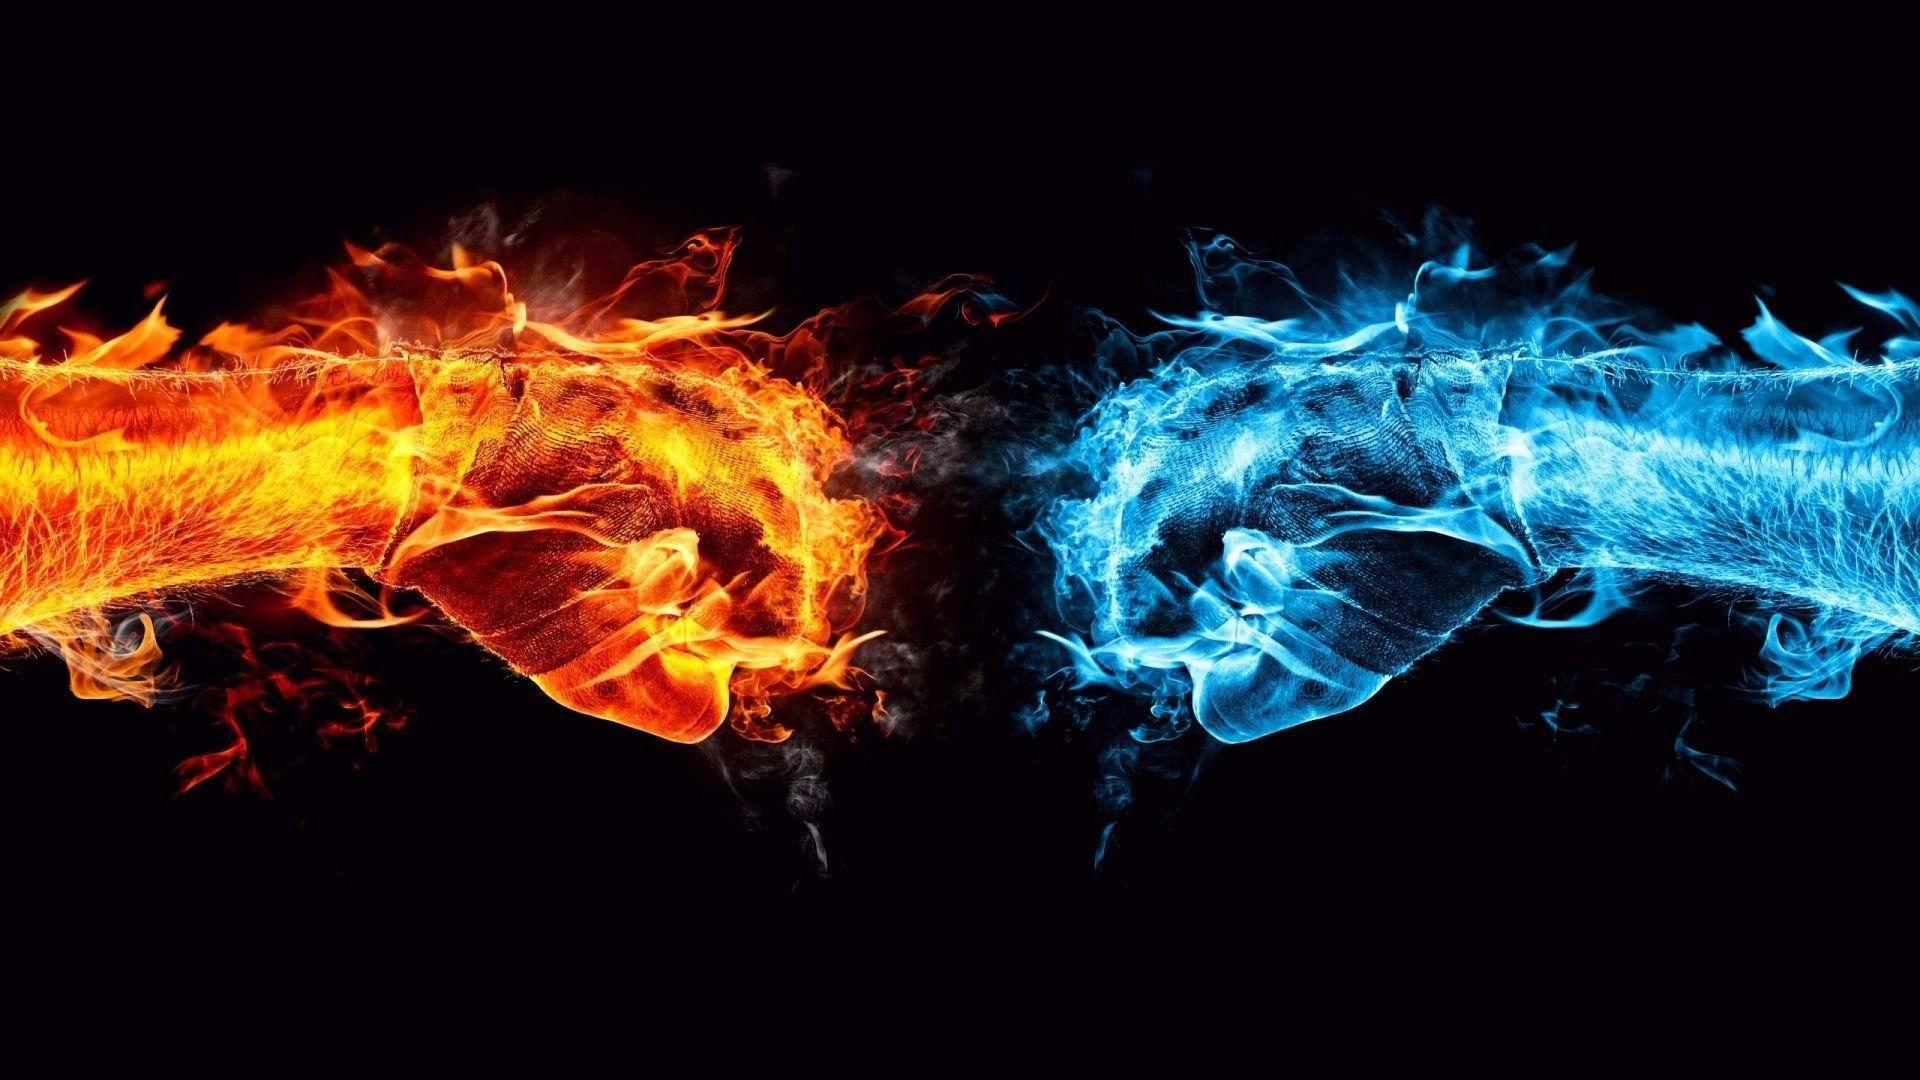 Awesome Fire Skull Wallpapers Desktop Download